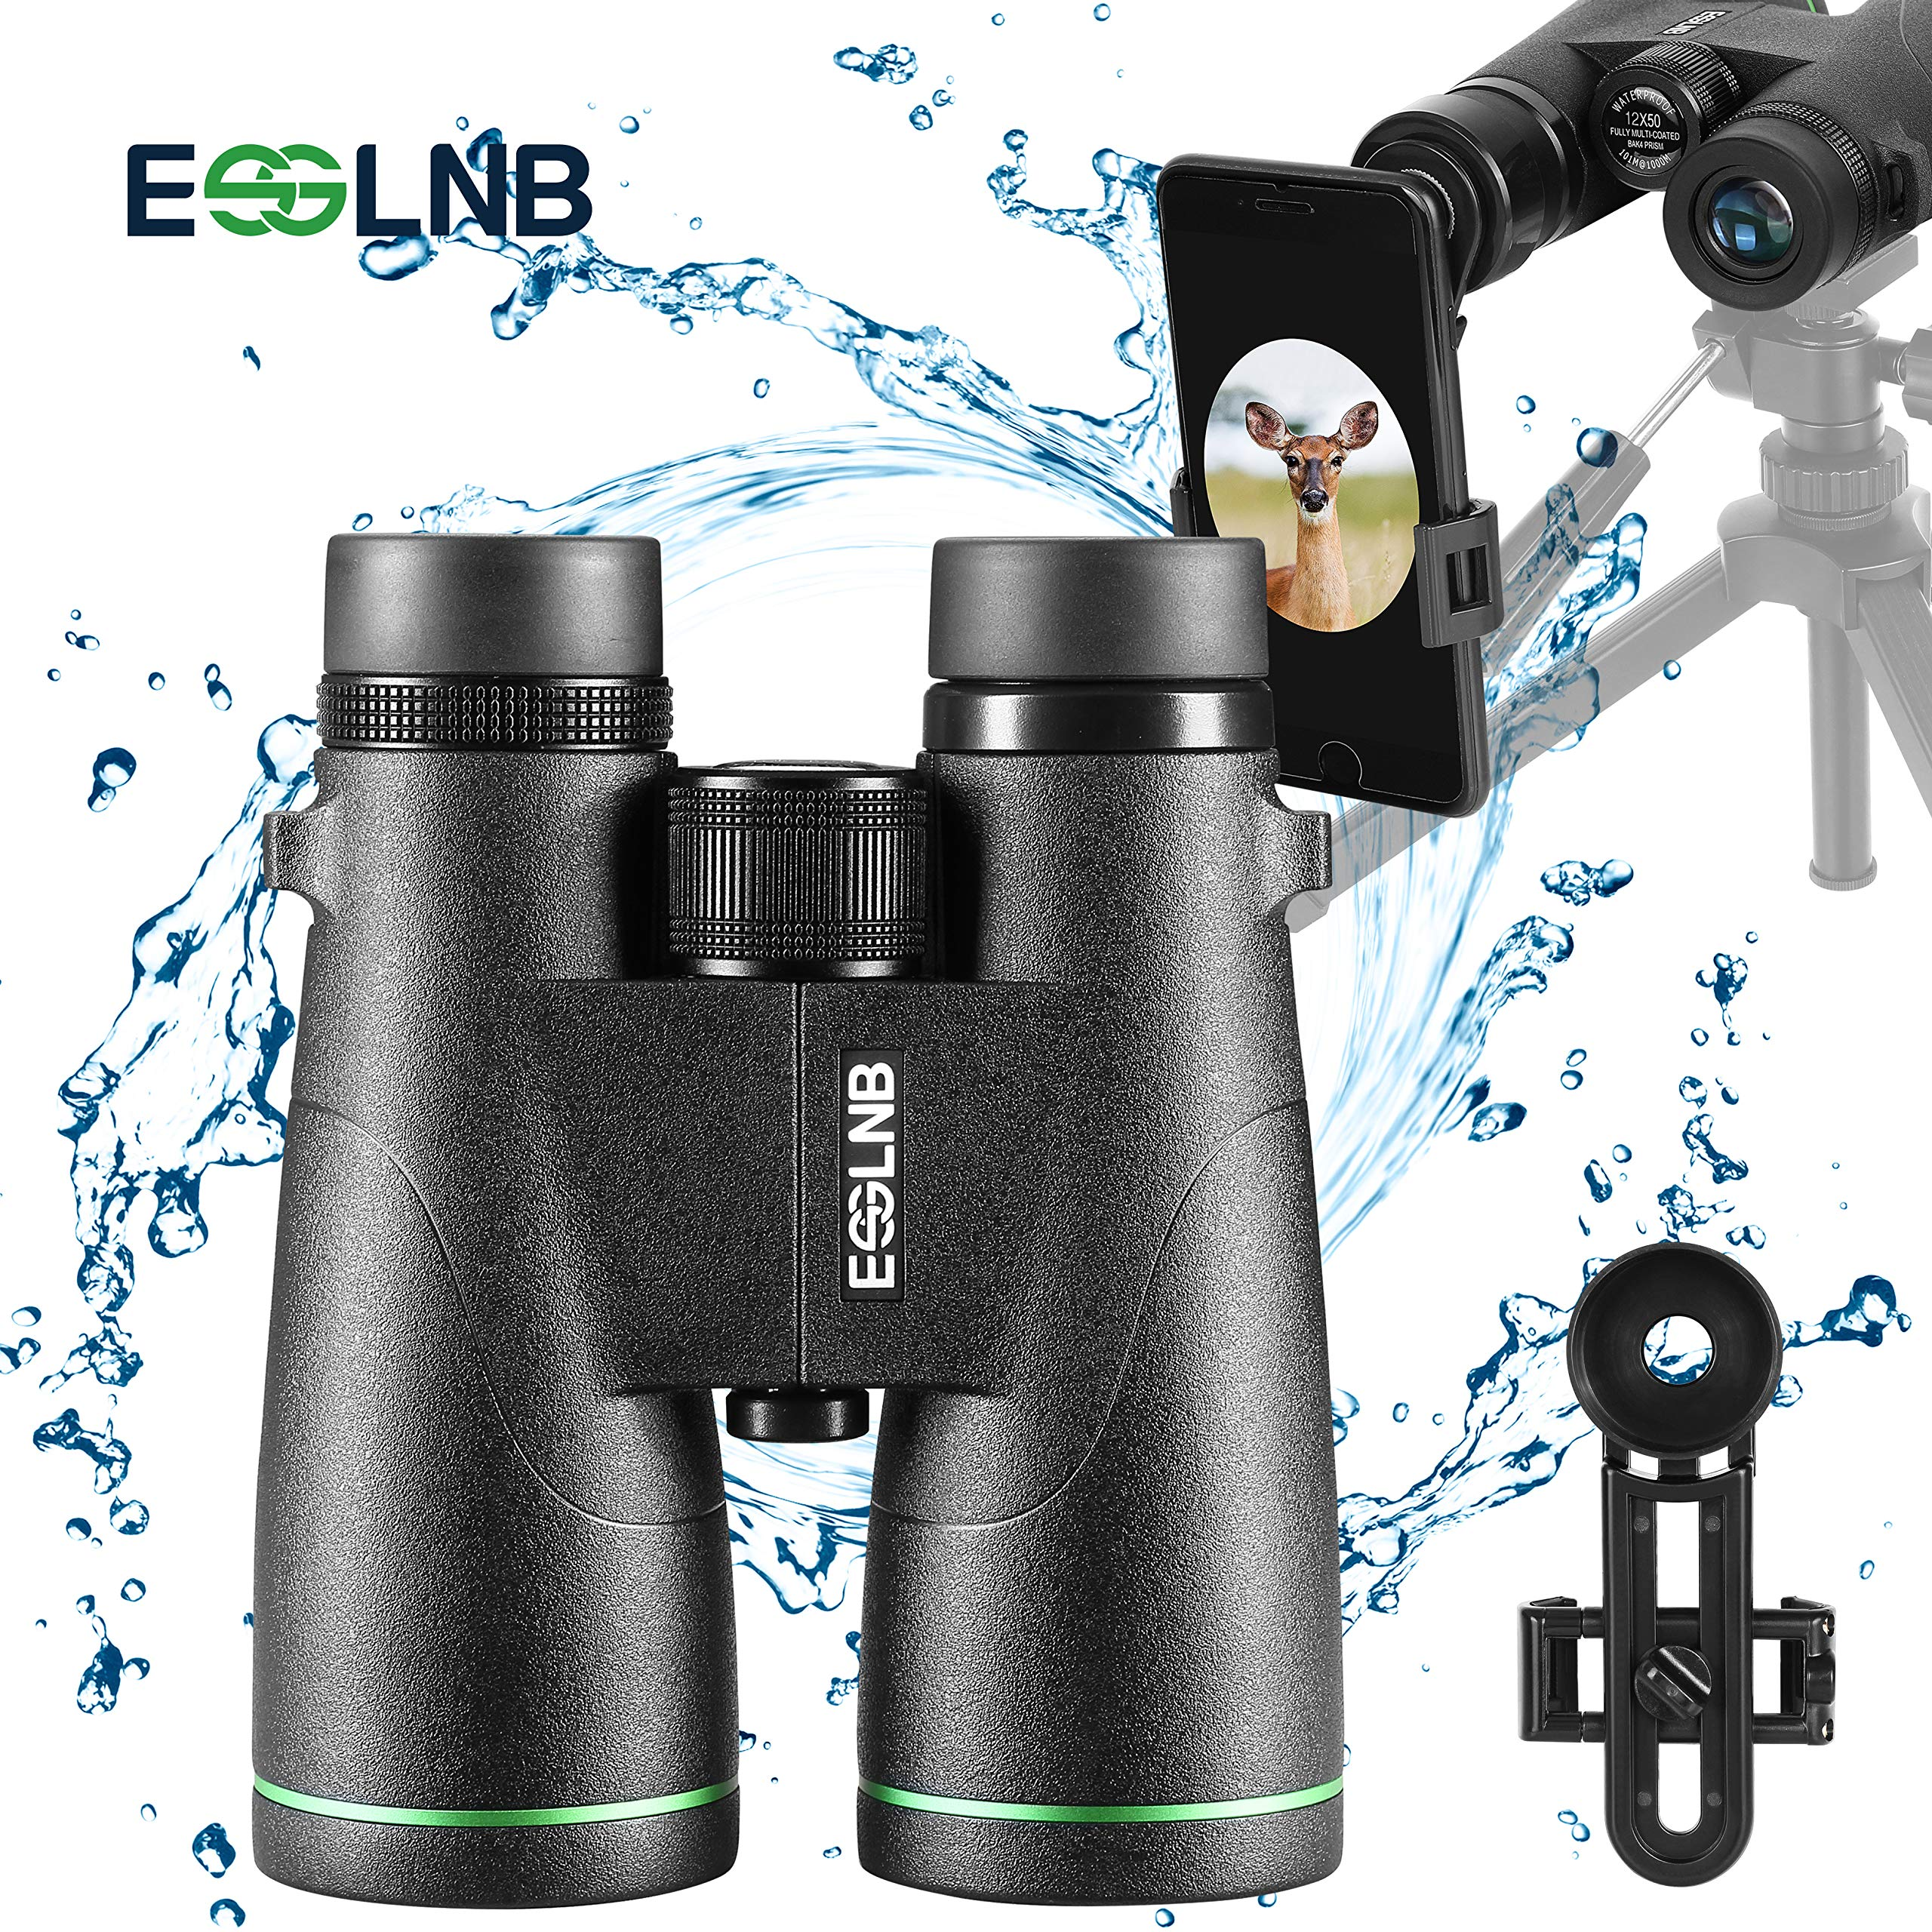 ESSLNB Astronomy Binoculars for Adults 12x50 100% Waterproof Binoculars BAK4 Fully Multi-Coated Compact Binoculars with Phone Adapter for Bird Watching Hunting with Carrying Bags and Strap by ESSLNB